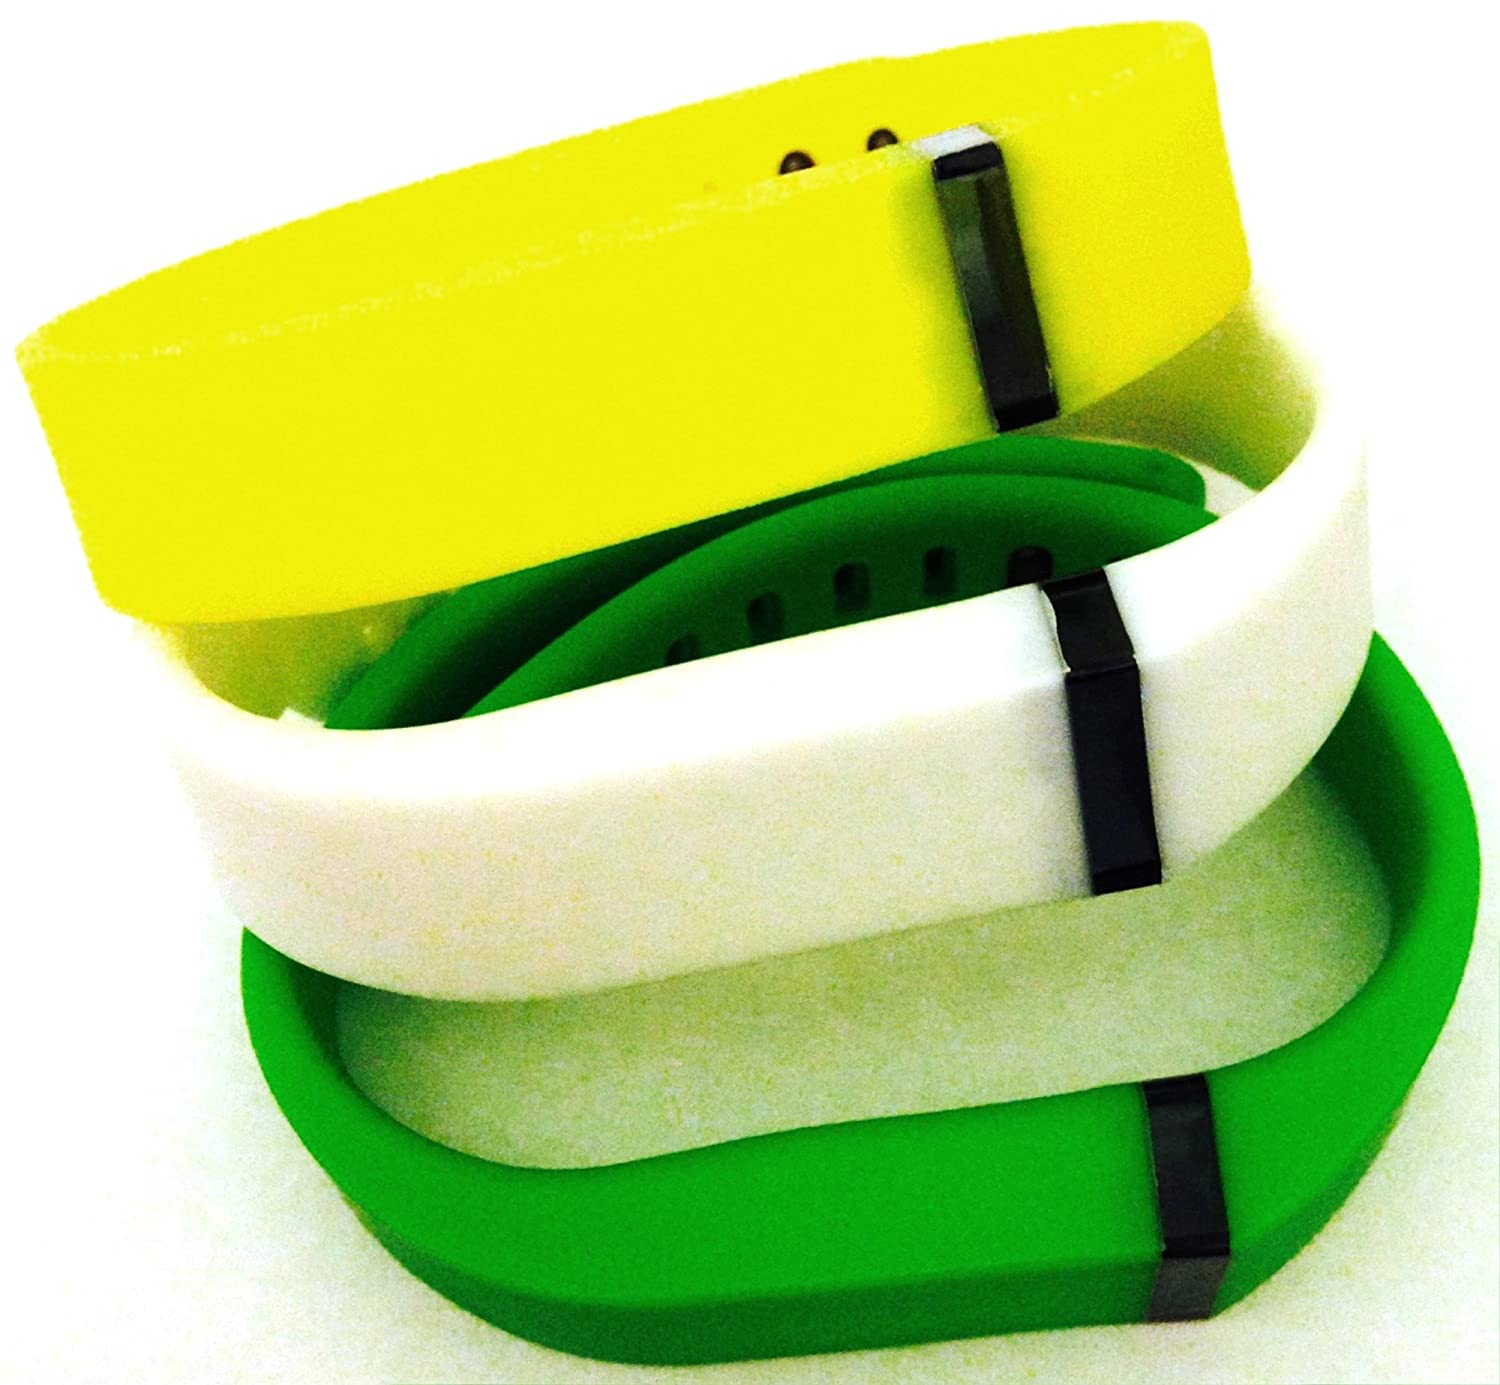 Large L 1pc White 1pc Green 1pc Yellow Replacement Bands + 1pc Free Large Grey Band With Clasp for Fitbit FLEX Only /No tracker/ Wireless Activity Bracelet Sport Wristband Fit Bit Flex Bracelet Sport Arm Band Armband